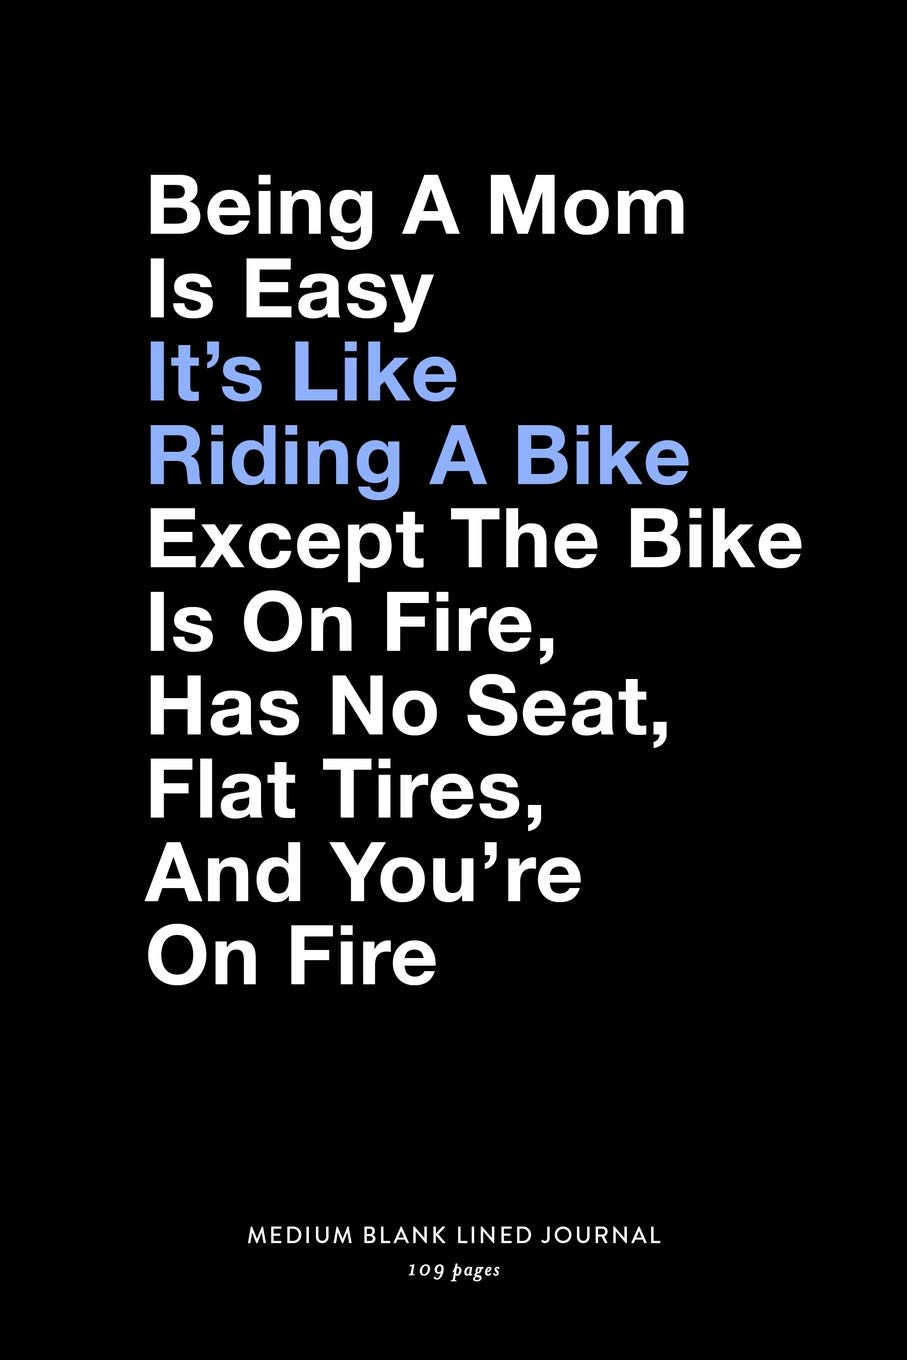 Buy Being A Mom Is Easy It S Like Riding A Bike Except The Bike Is On Fire Has No Seat Flat Tires And You Re On Fire Medium Blank Lined Journal 109